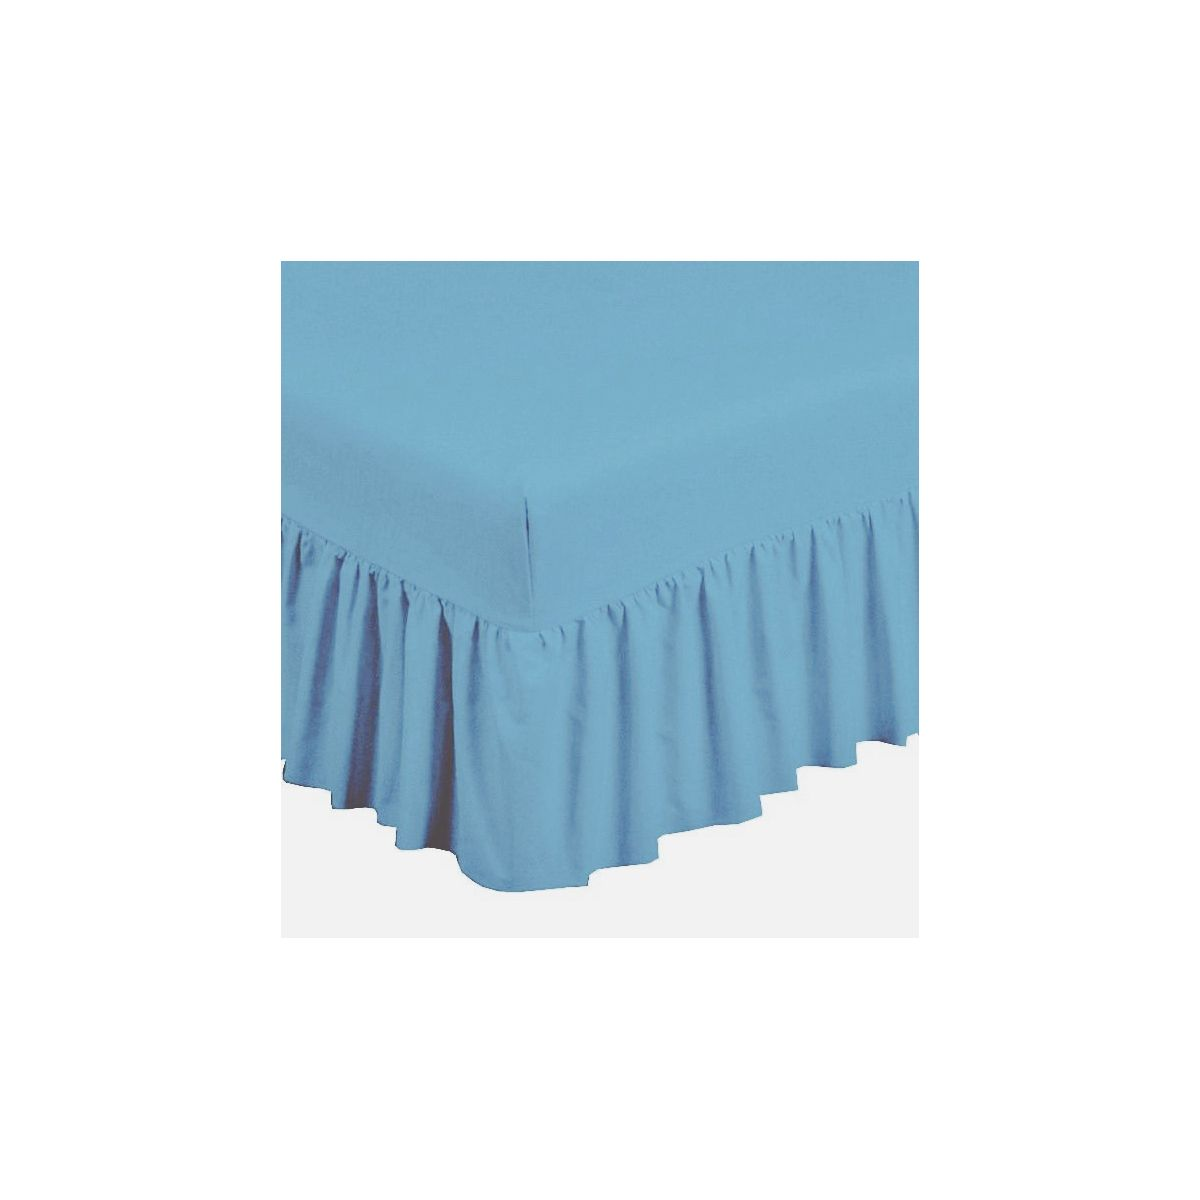 Gerald Ruffled Bed Cover